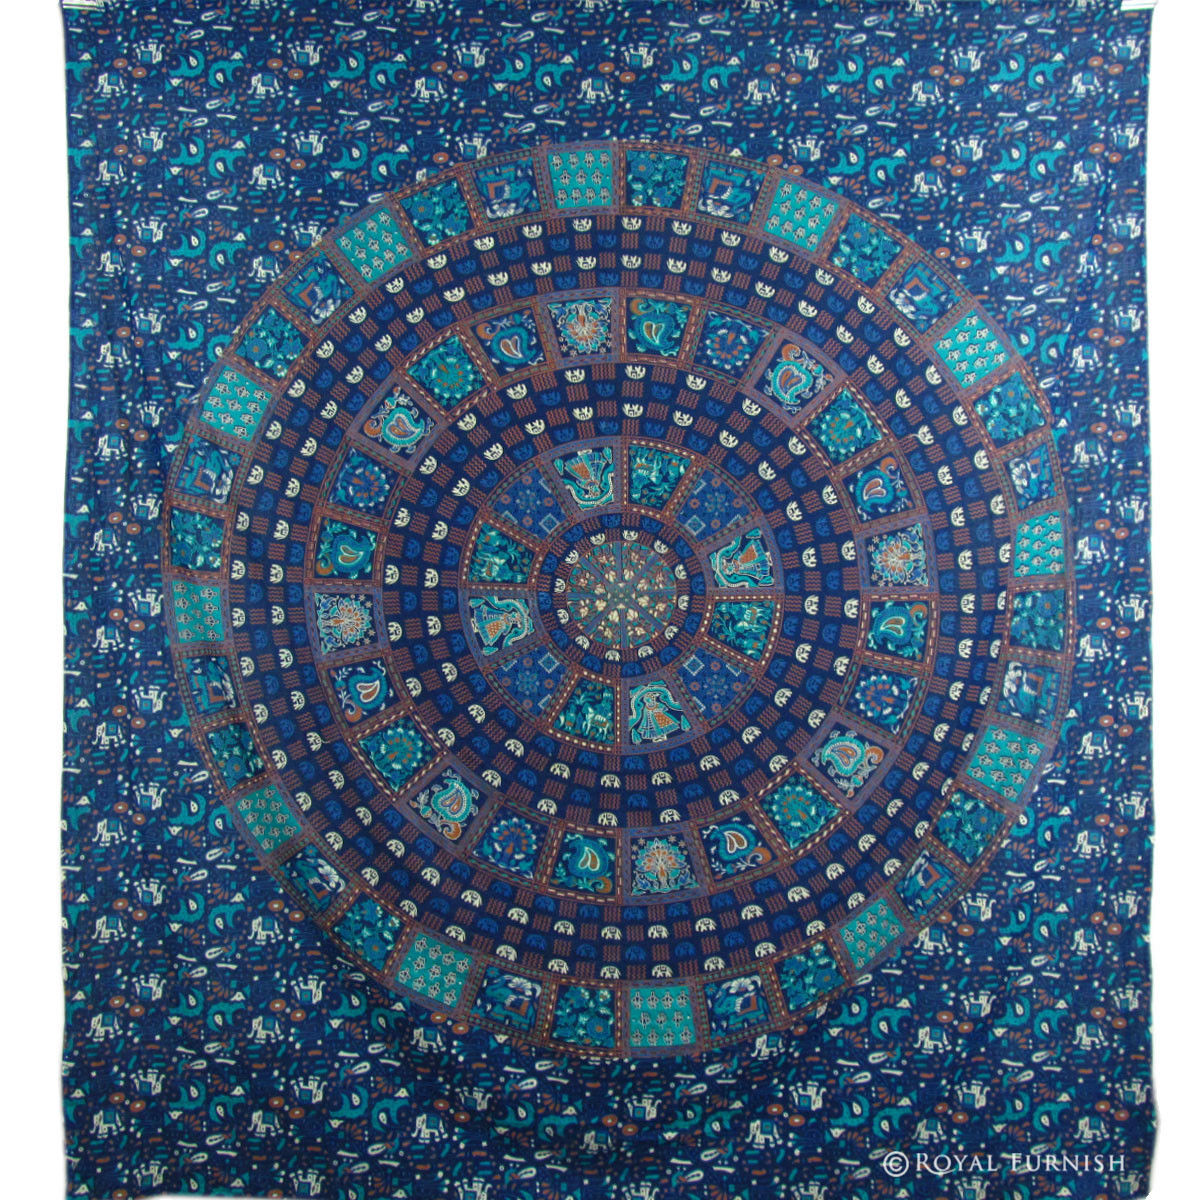 Blue Mandala Hippie Wall Hanging Indian Tapestry Throw